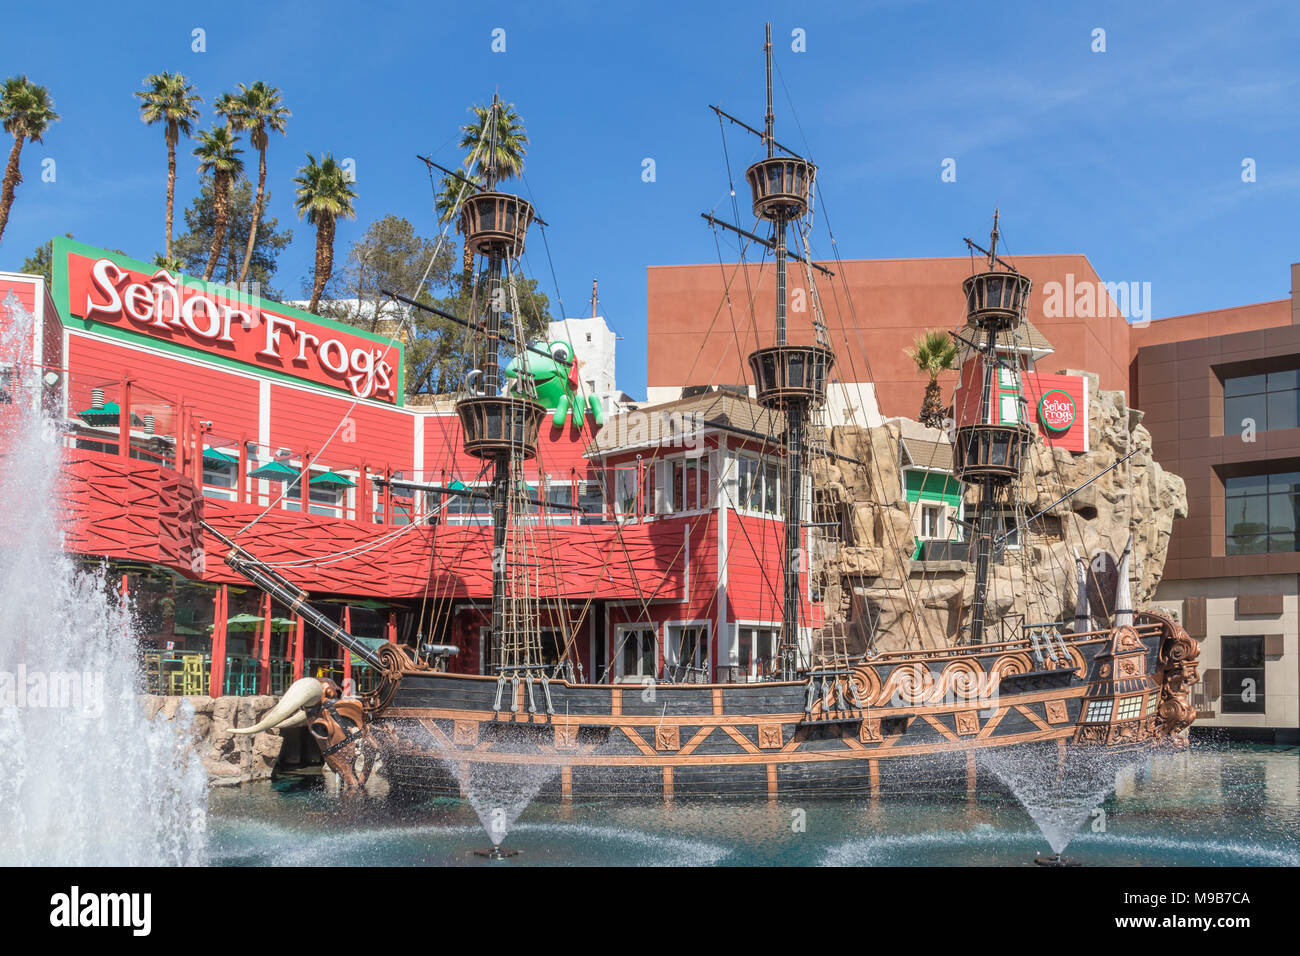 Senor Frogs restaurant and bar with entertainment at Treasure Island Hotel, Resort and Casino in Las Vegas, Nevada. - Stock Image